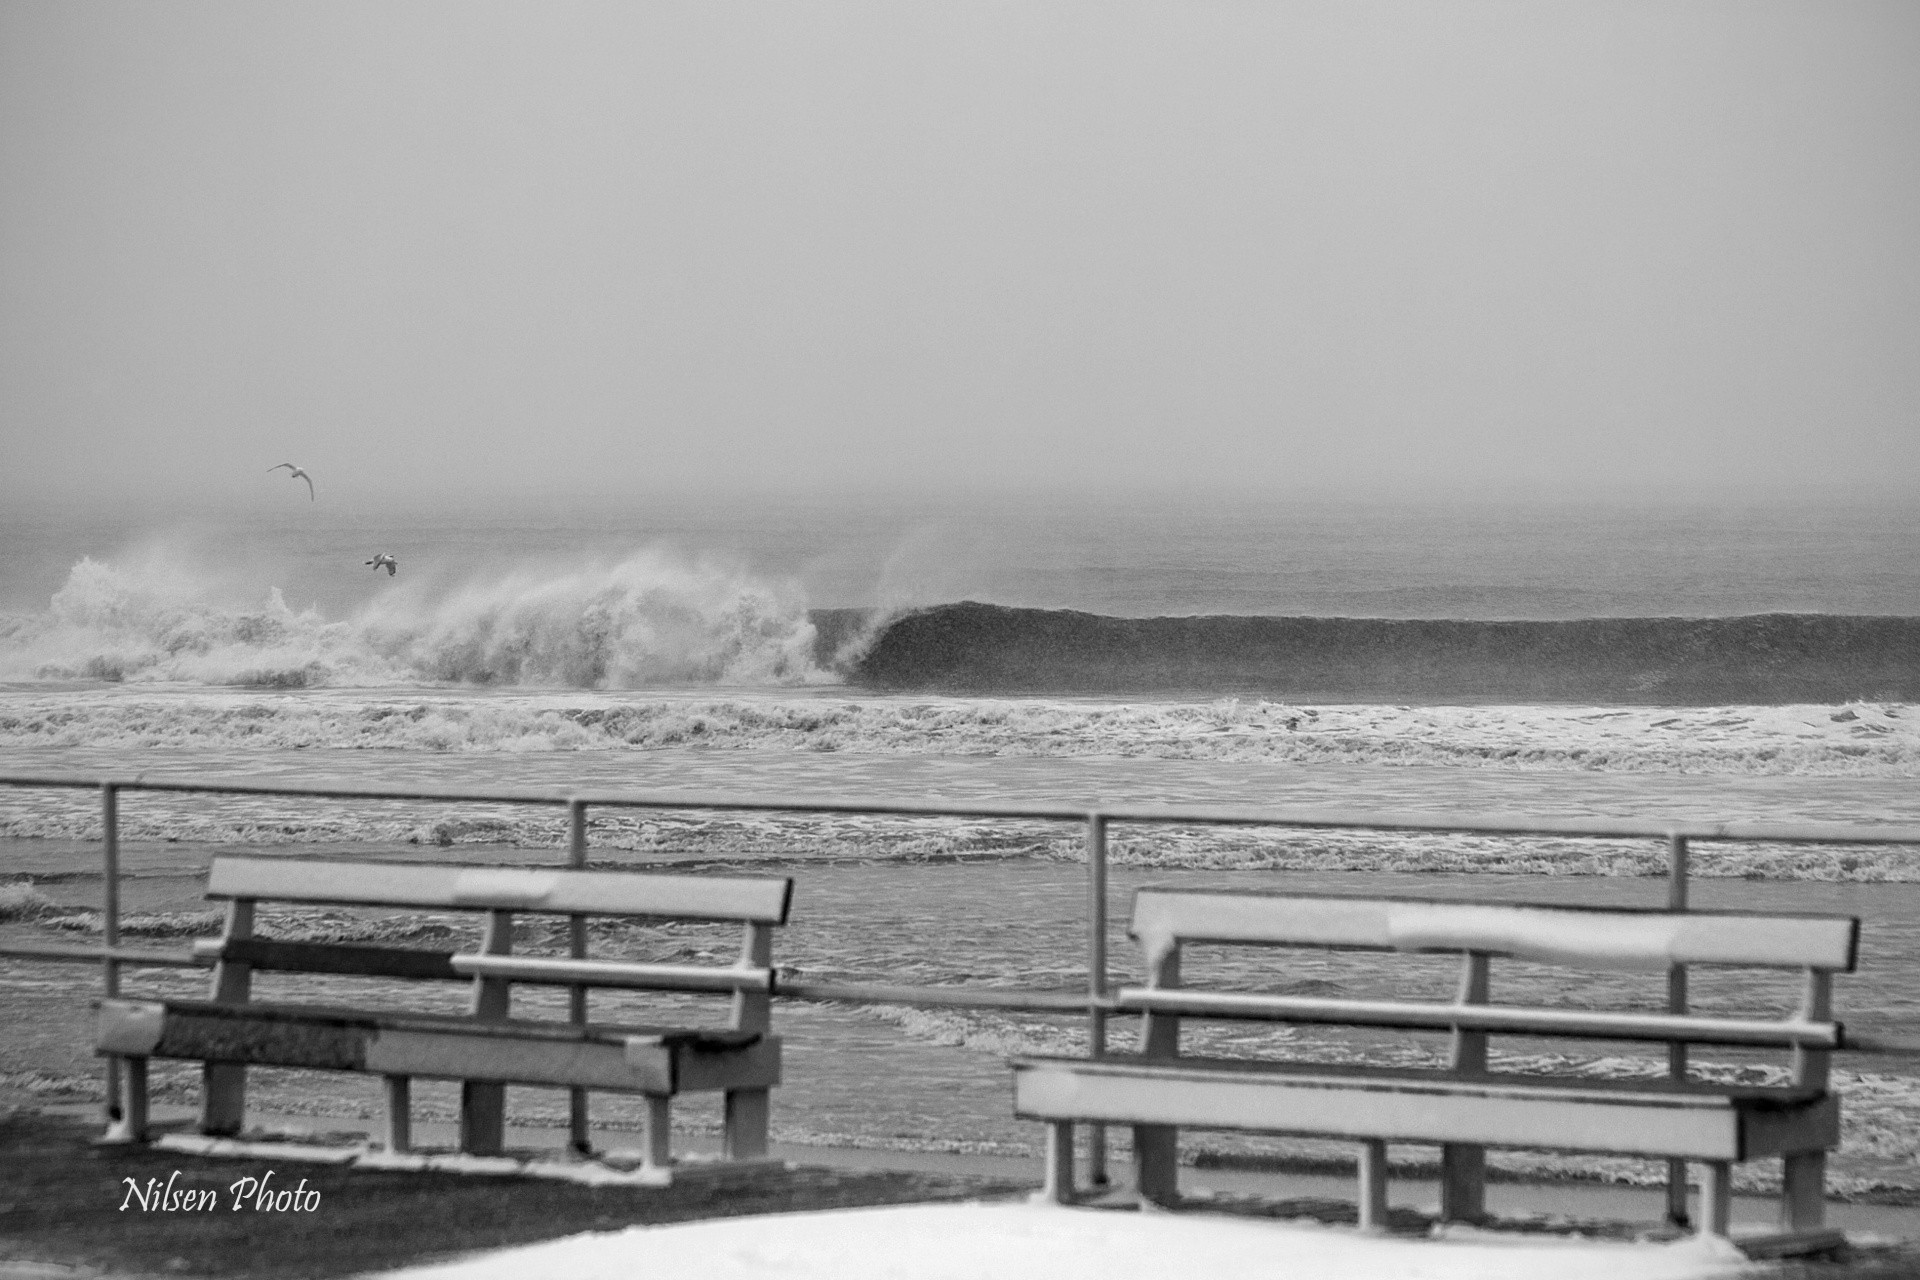 Dave Nilsen's photo of Ocean City, NJ